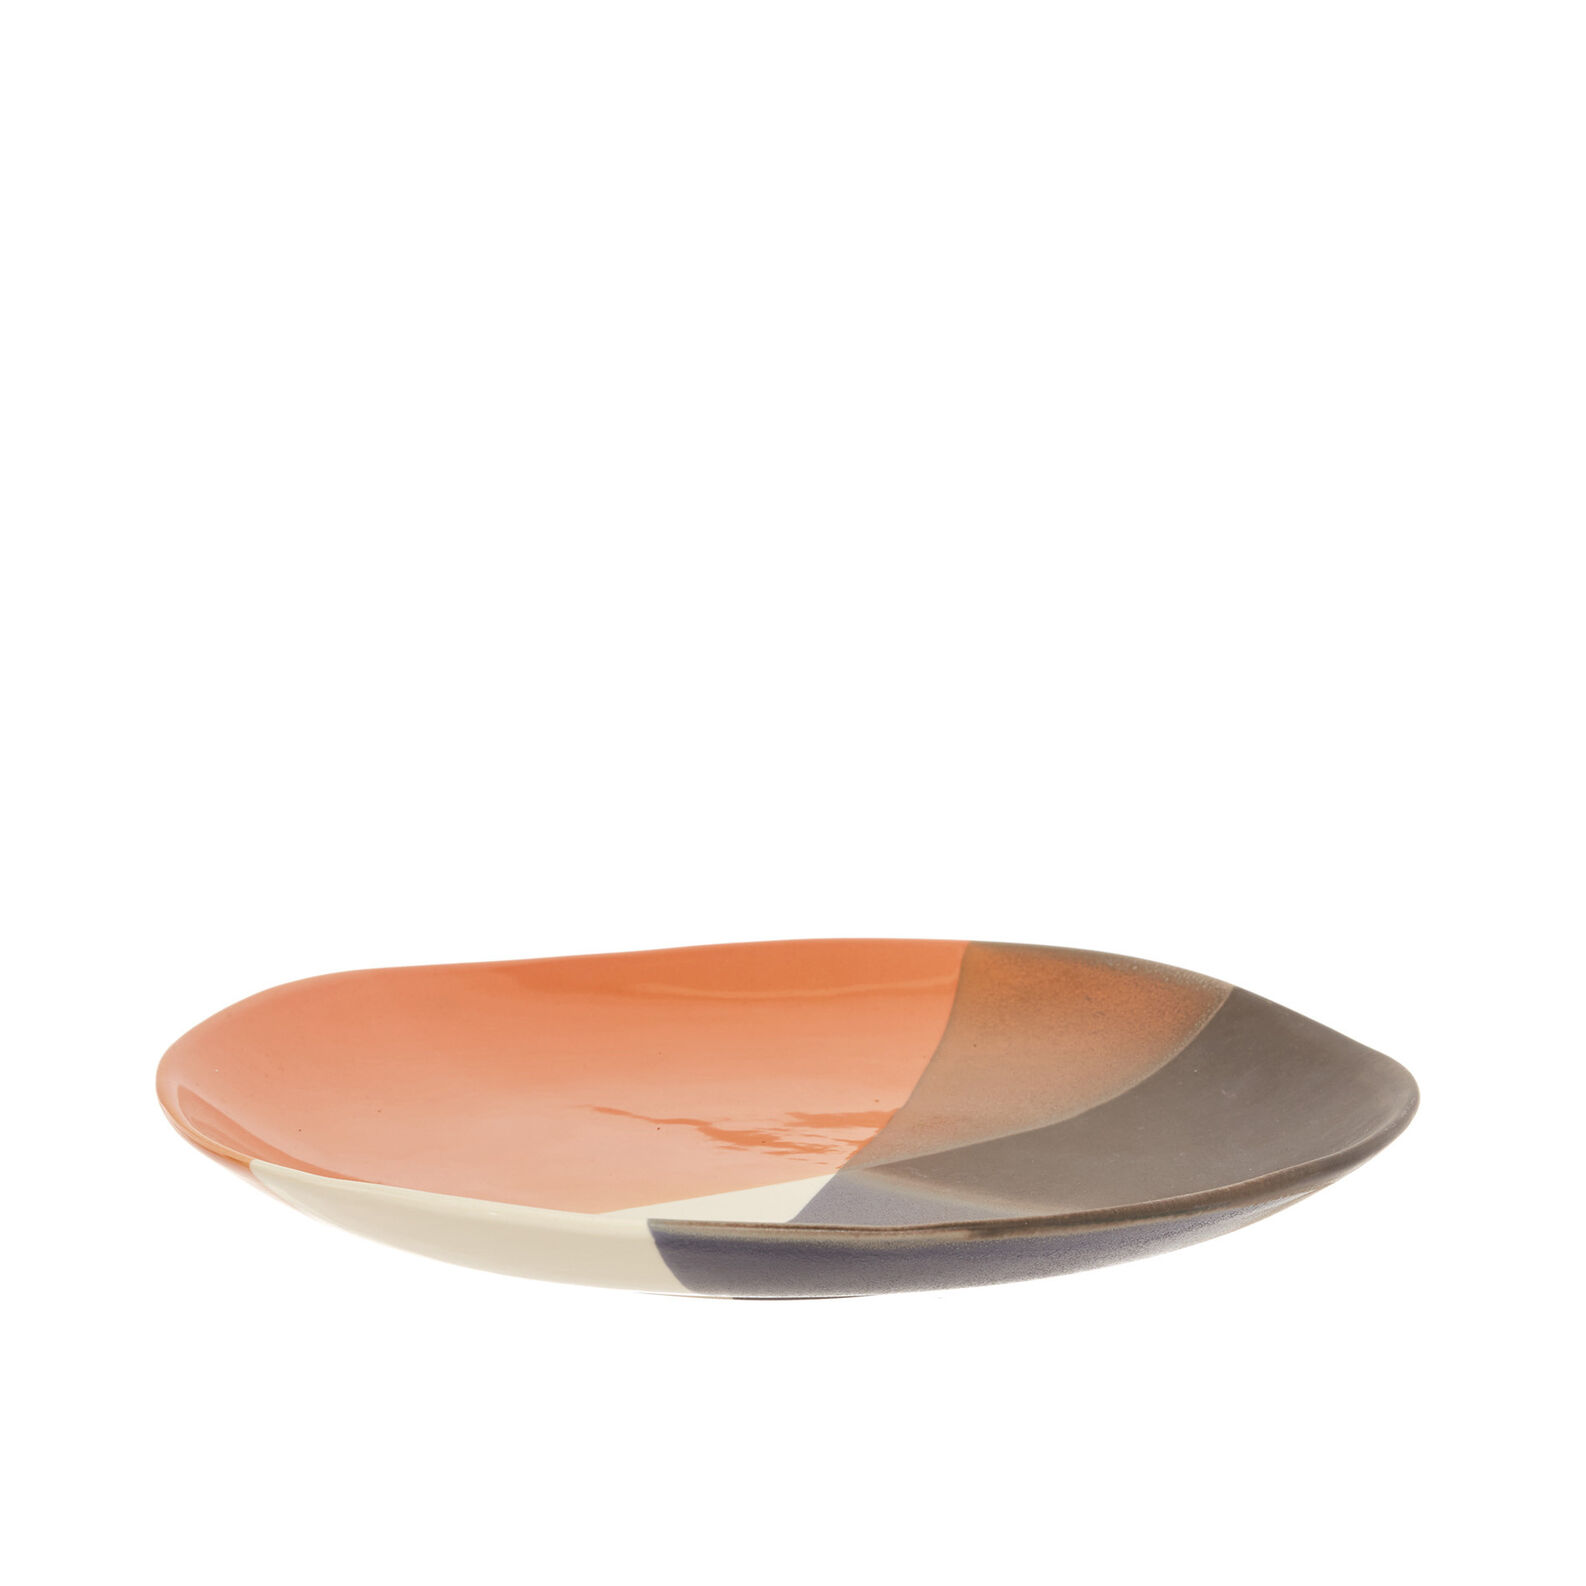 Coloured ceramic serving dish